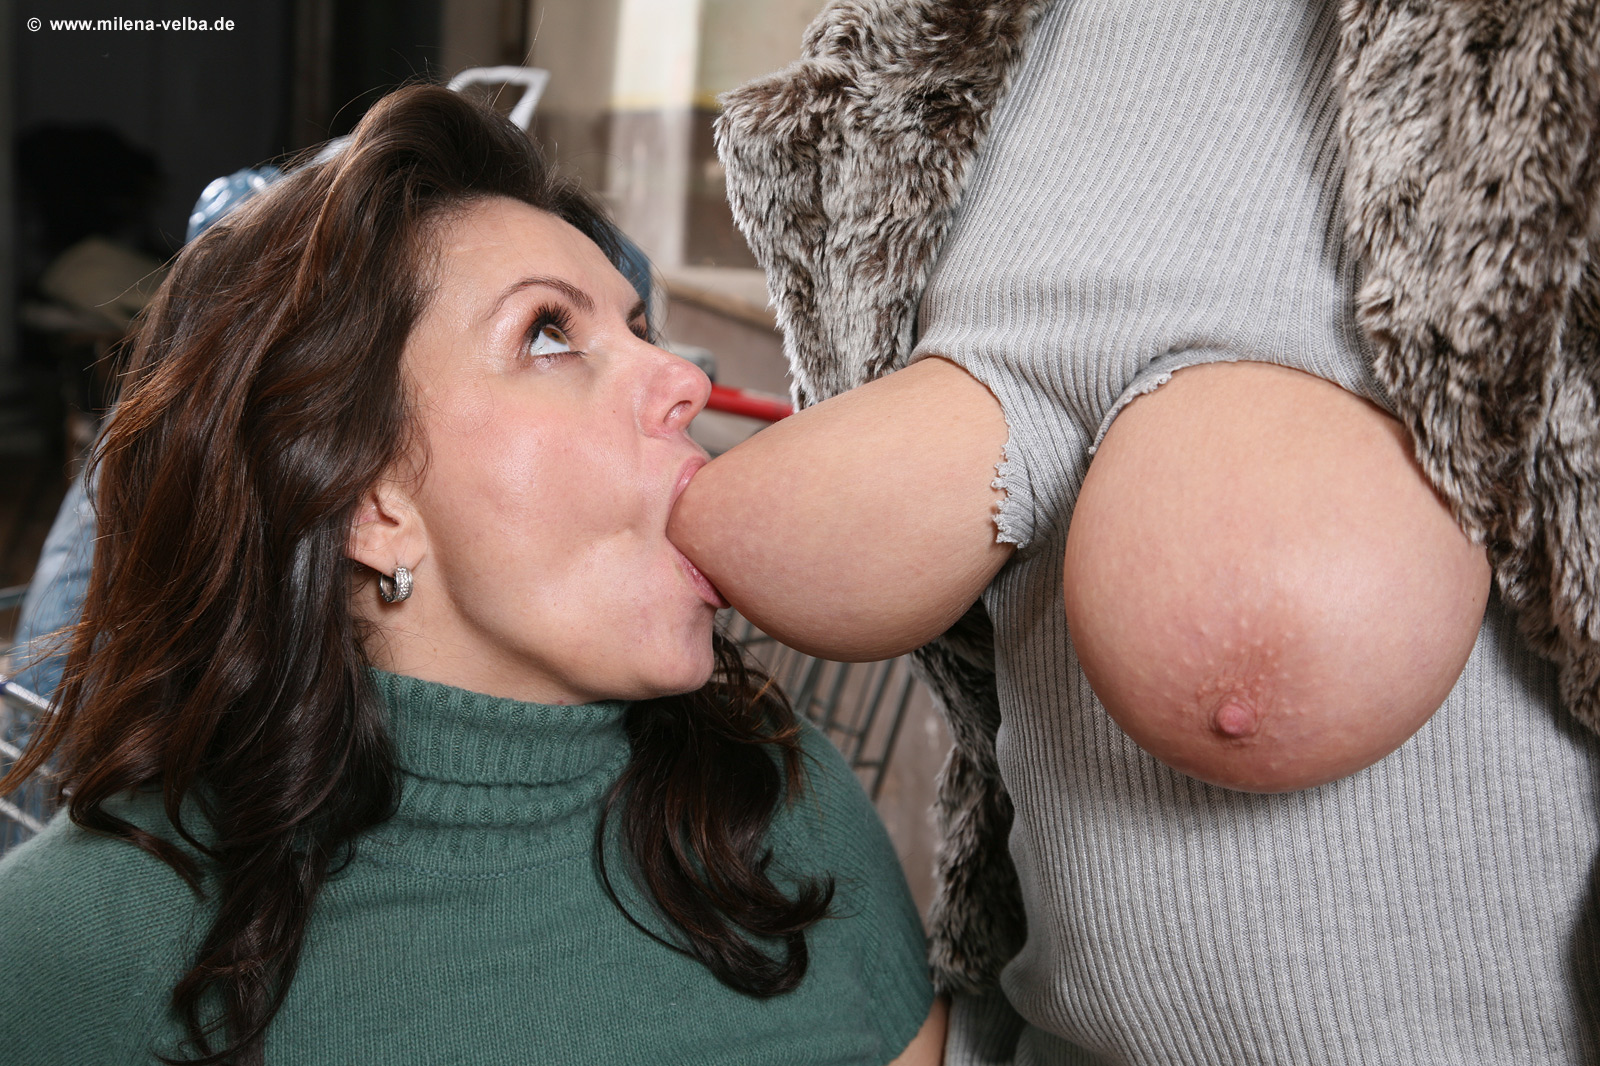 Get the nipple sucking porn videos that clit...yum